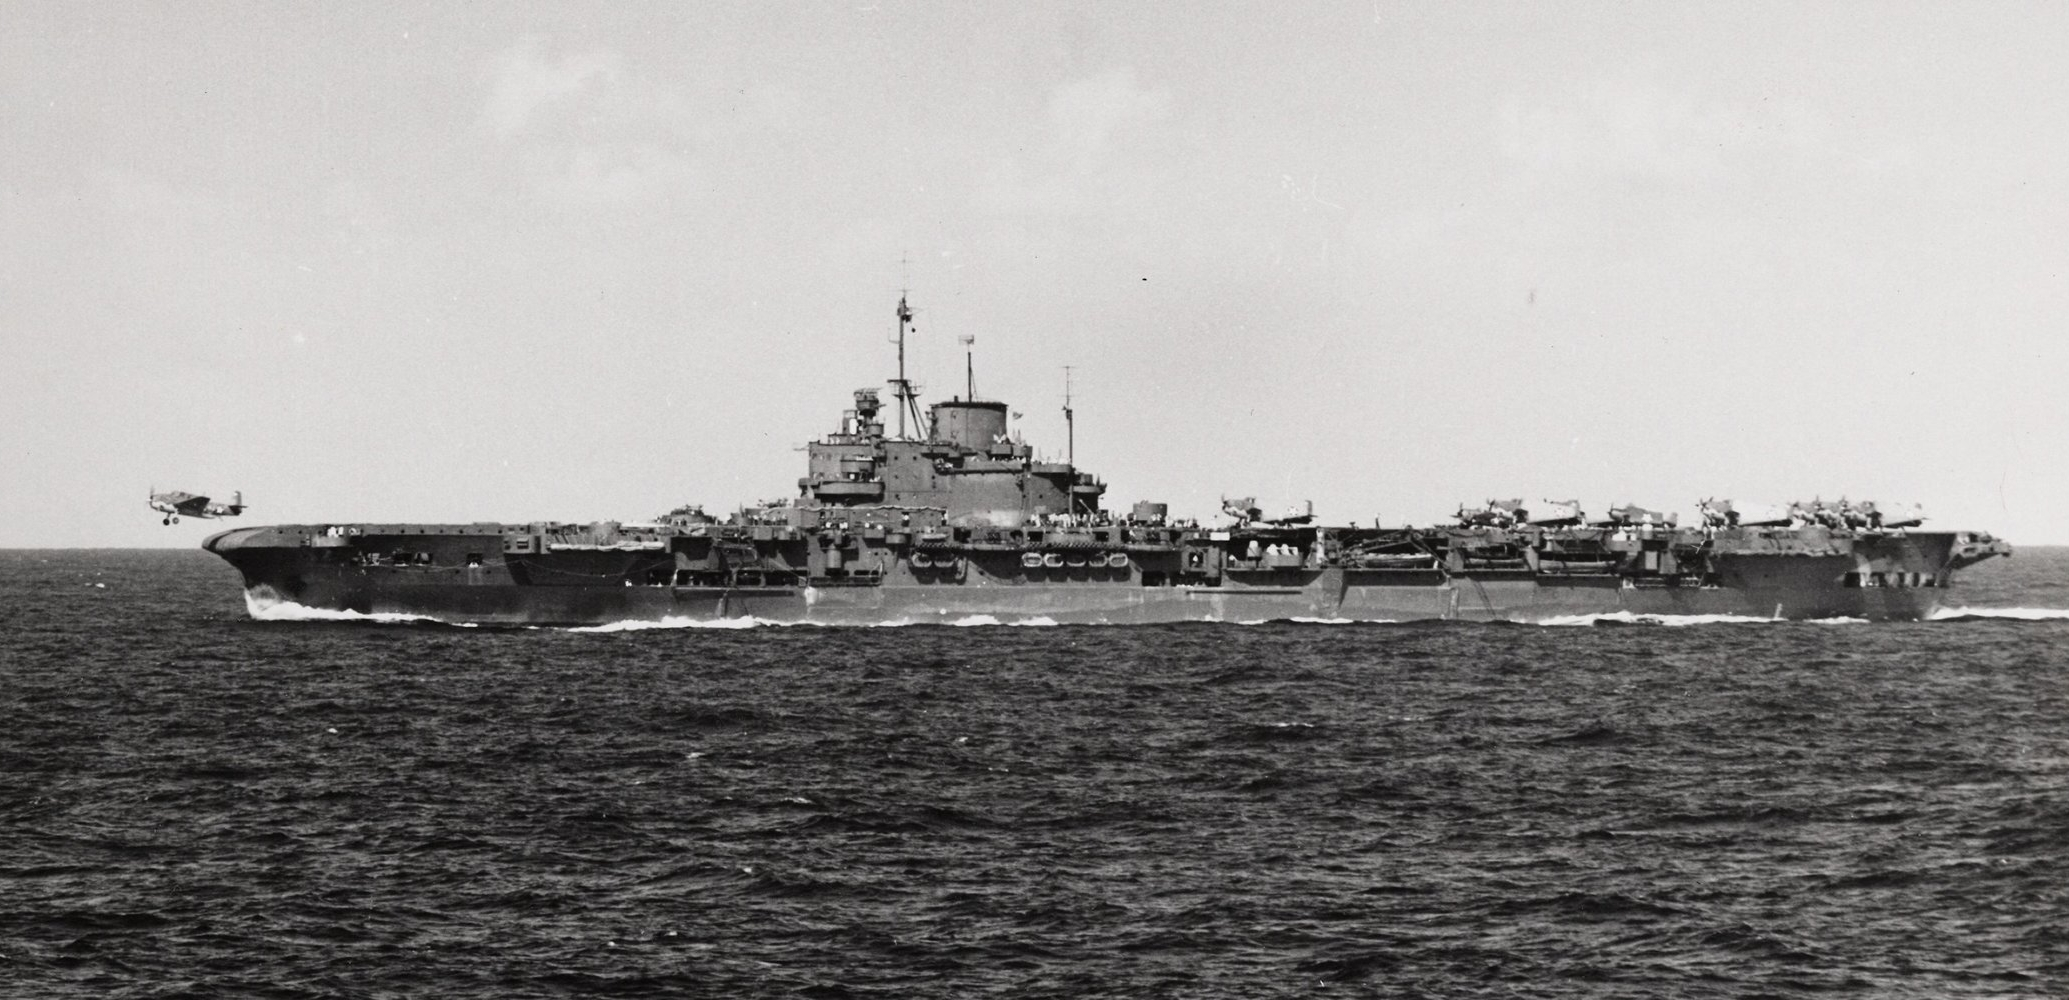 'USS ROBIN' (HMS VICTORIOUS) flies off a Martlet. Avengers can be seen in the rear deck park.